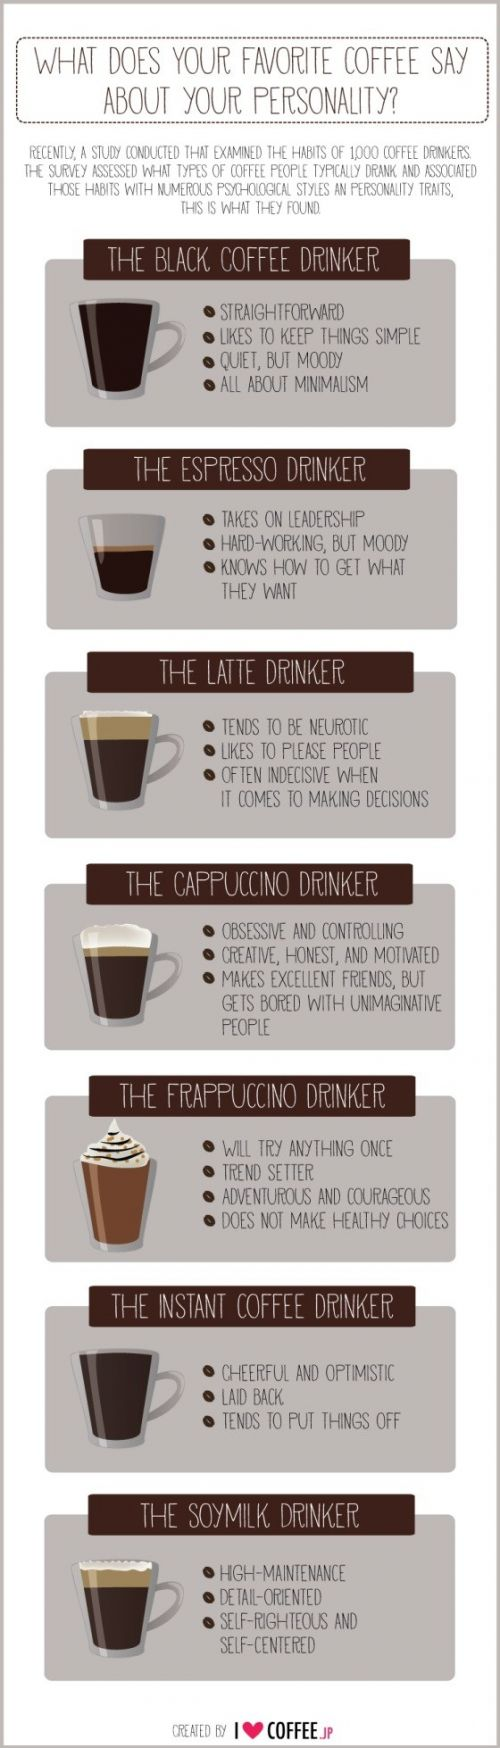 Infográfico sobre as preferencias de café